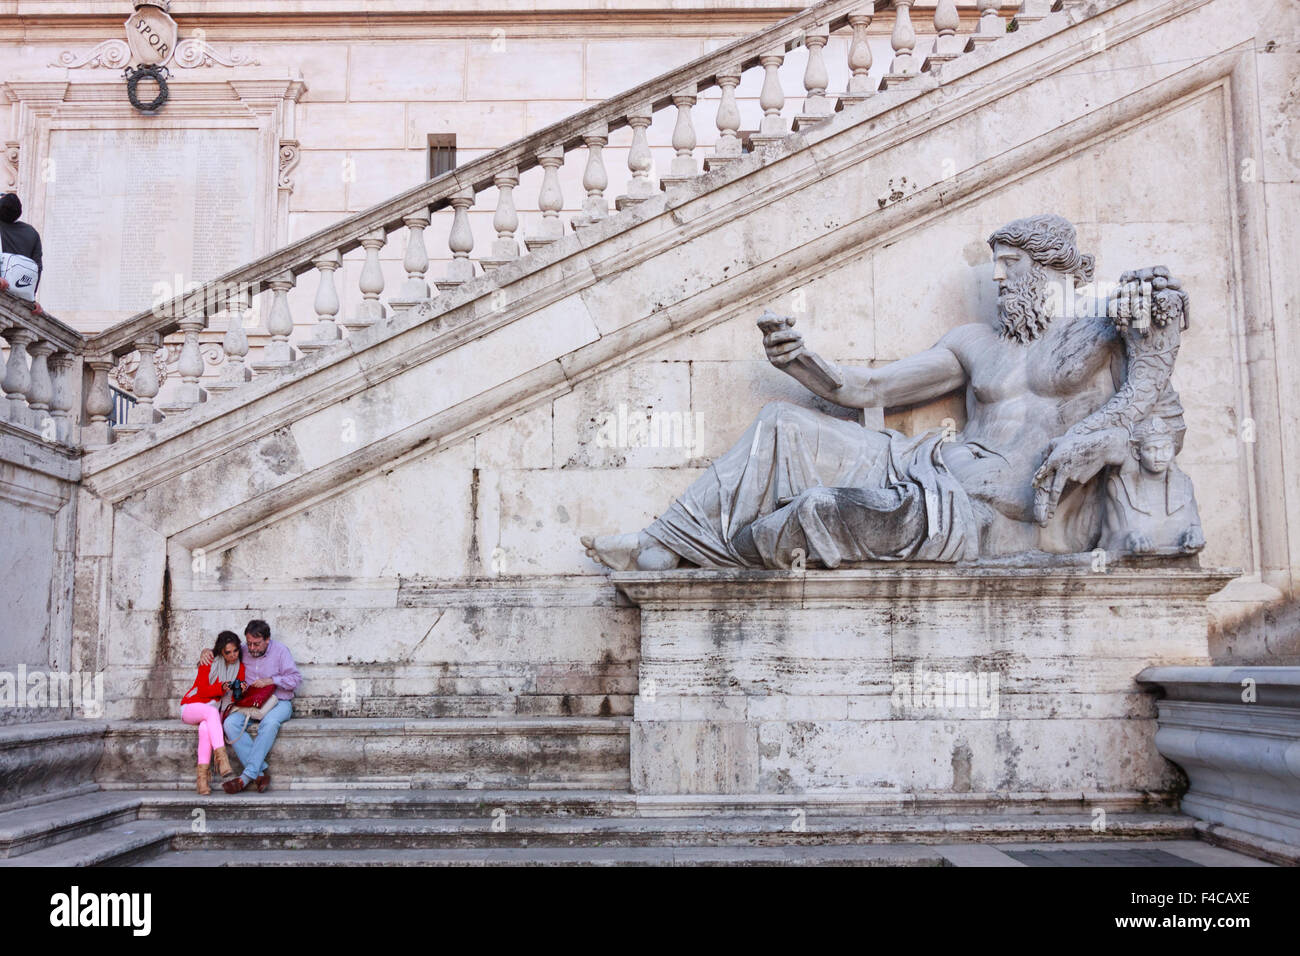 People next to ancient Roman allegory of Nile River by Matteo di Castello on the Senatorial Palace facade on Piazza - Stock Image